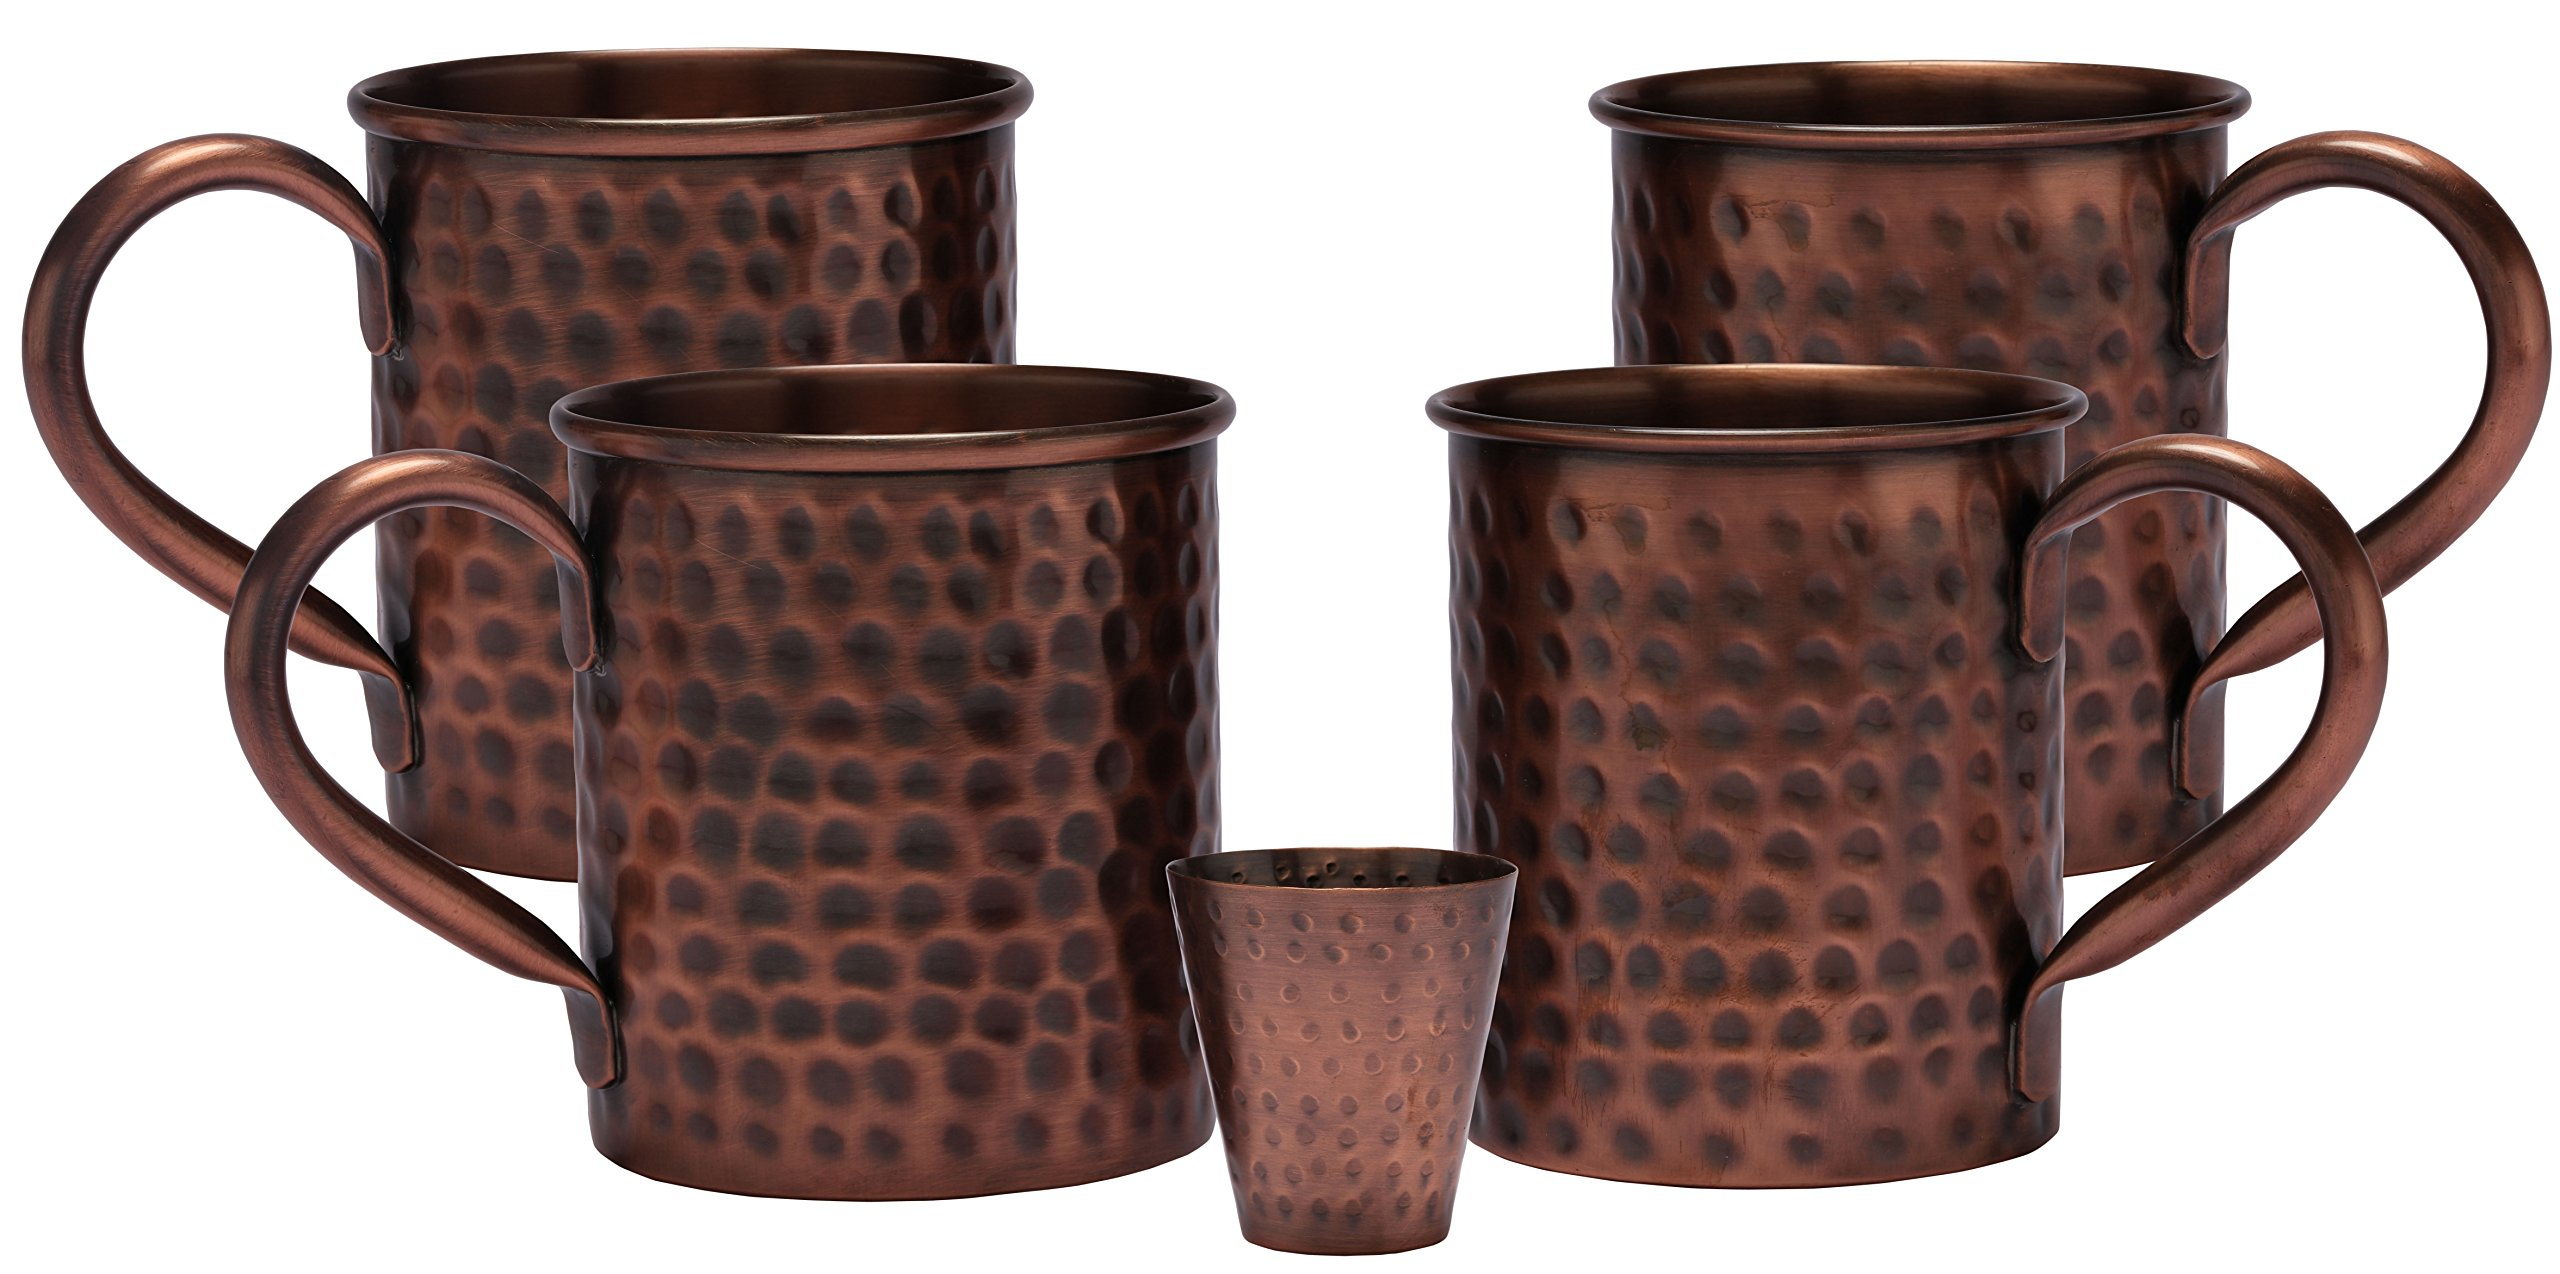 Melange 24 Oz Antique Finish Copper Classic Mug for Moscow Mules, Set of 4 with One Shot Glass - 100% Pure Hammered Copper - Heavy Gauge - No Lining - Includes Free Recipe Card